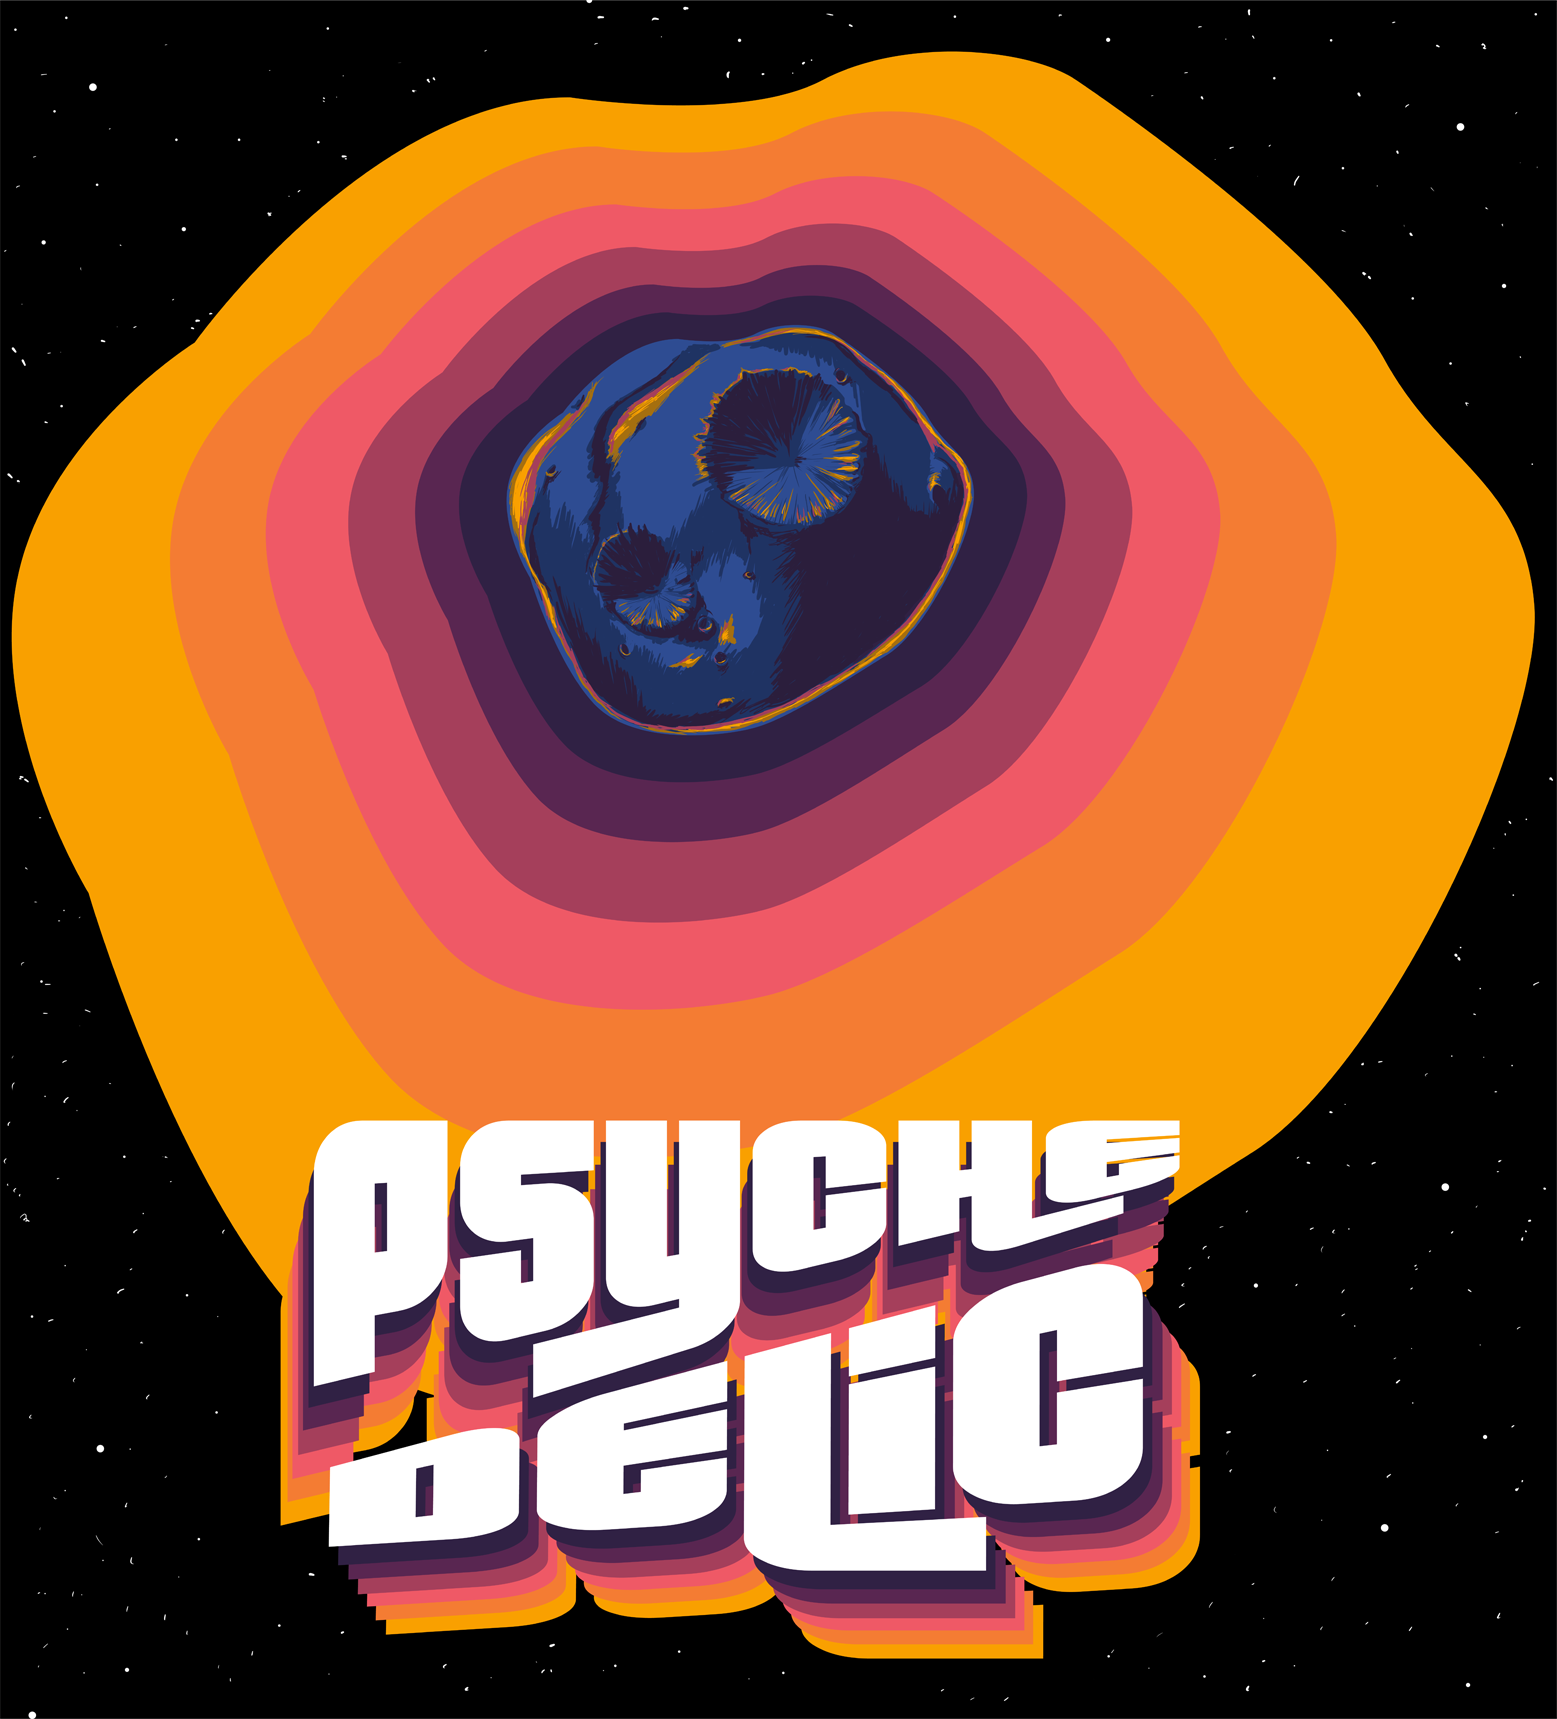 https://psyche.asu.edu/wp-content/uploads/2018/11/Psyche_Inspired_18-19_CTinoco_Project1_PsycheDelic_asteroid_181114.png